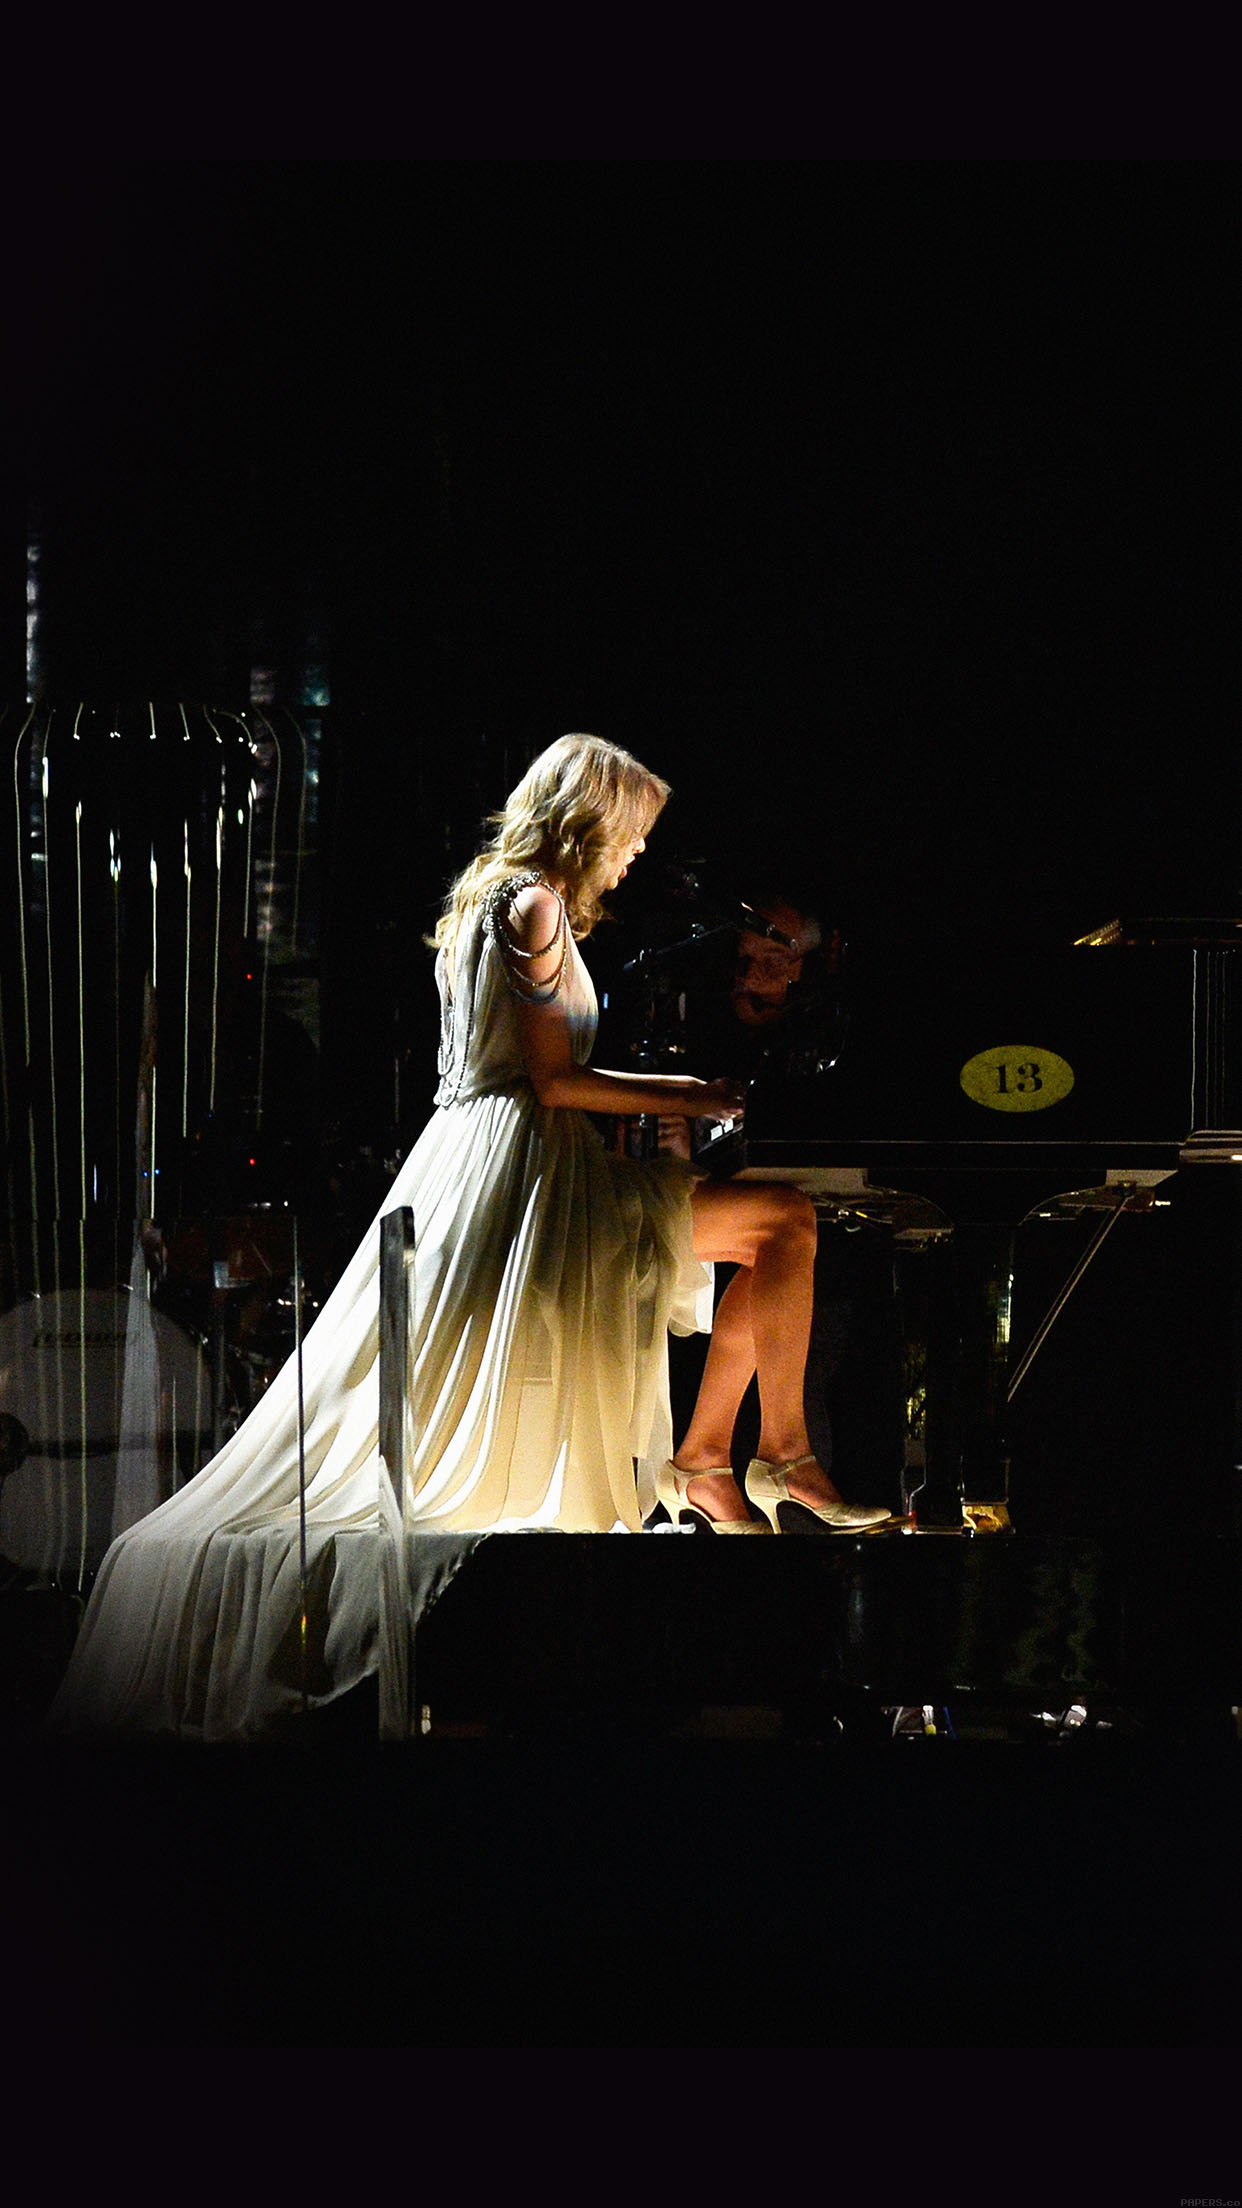 Ylor Swift Piano Concert Woman Music Android wallpaper